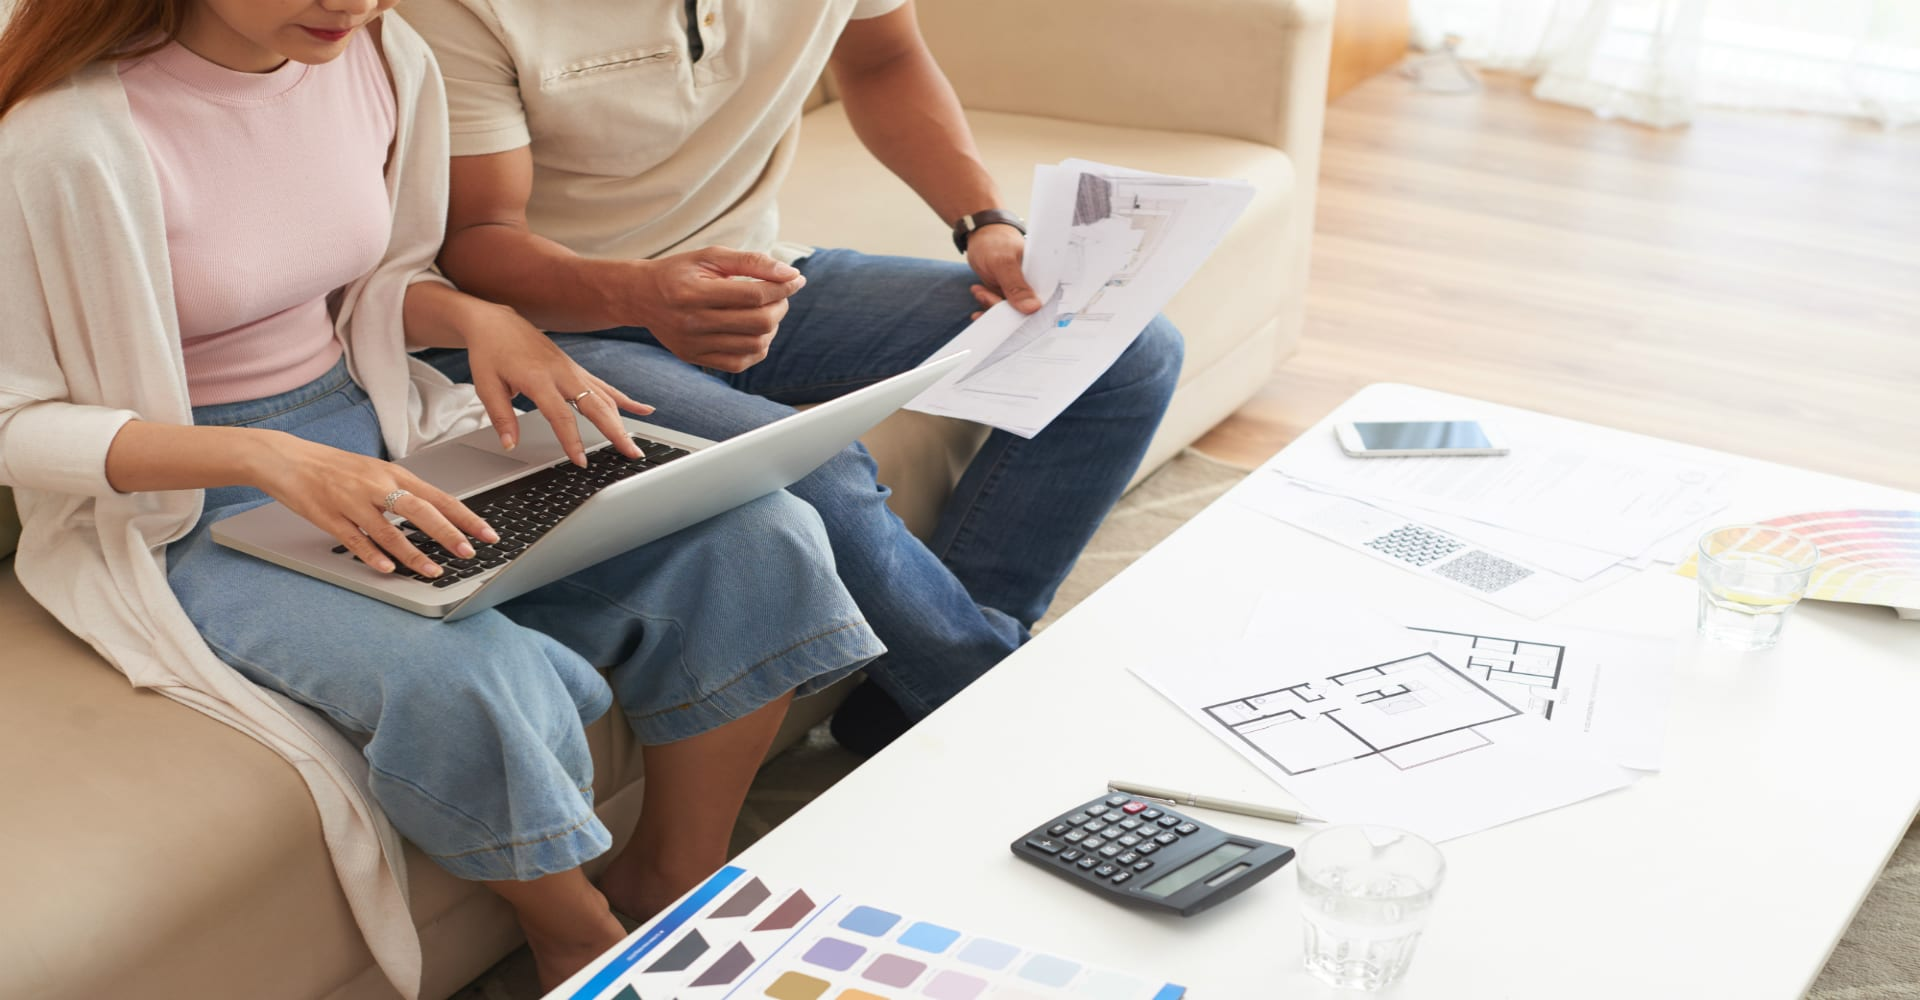 Two people reviewing a floor plan together. Hard wood floor in the background.